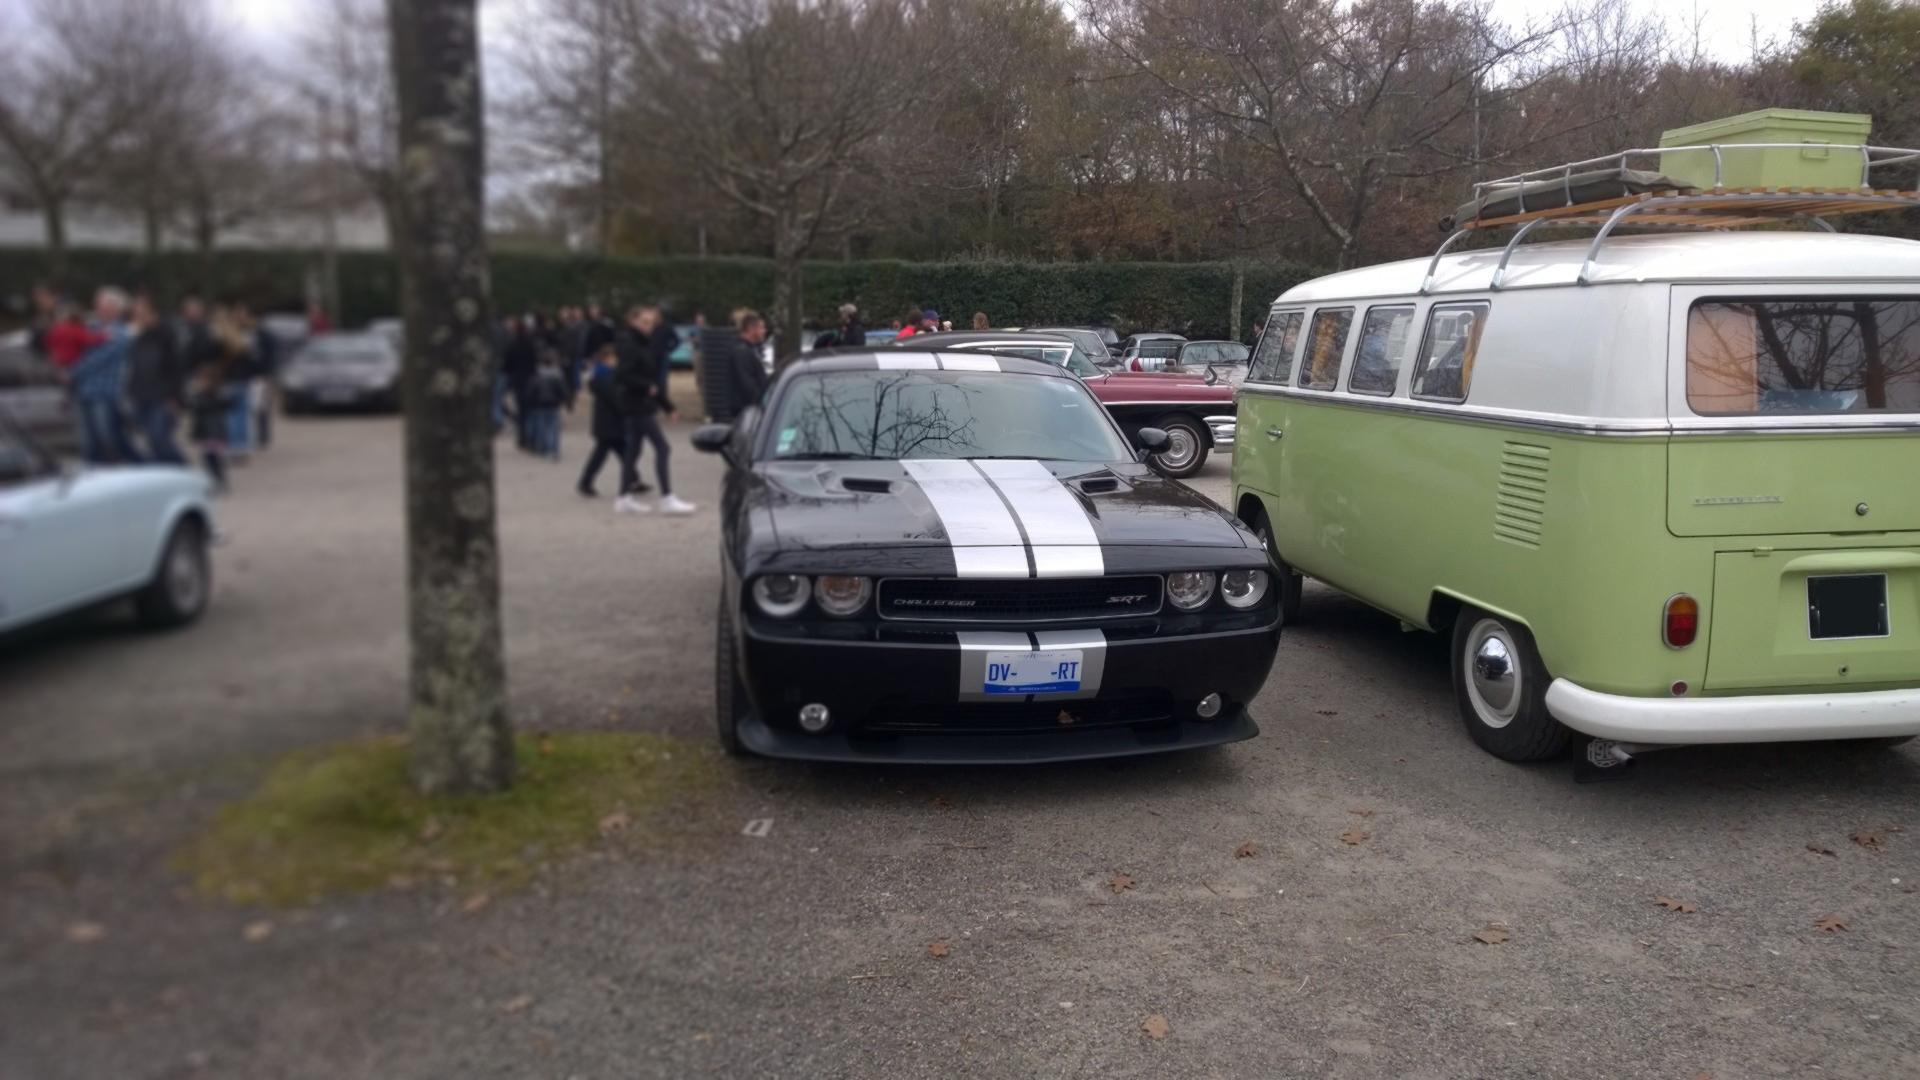 DM photo - Dodge Challenger SRT8 - arrière / rear - Ouest Motors Festival - 2015 - Lorient